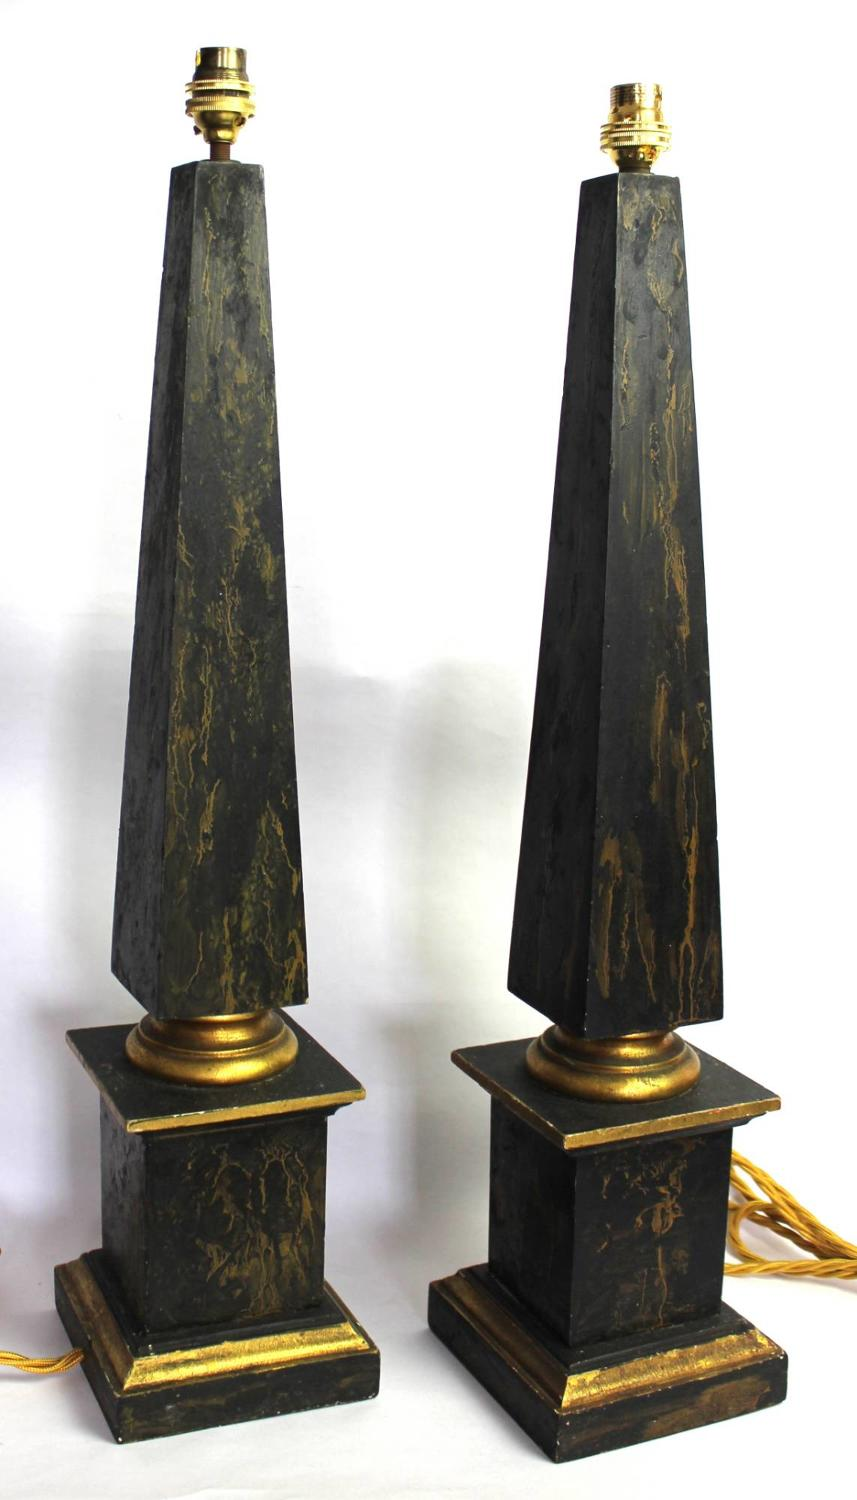 Pair of Faux Marble Obelisk Table Lamps